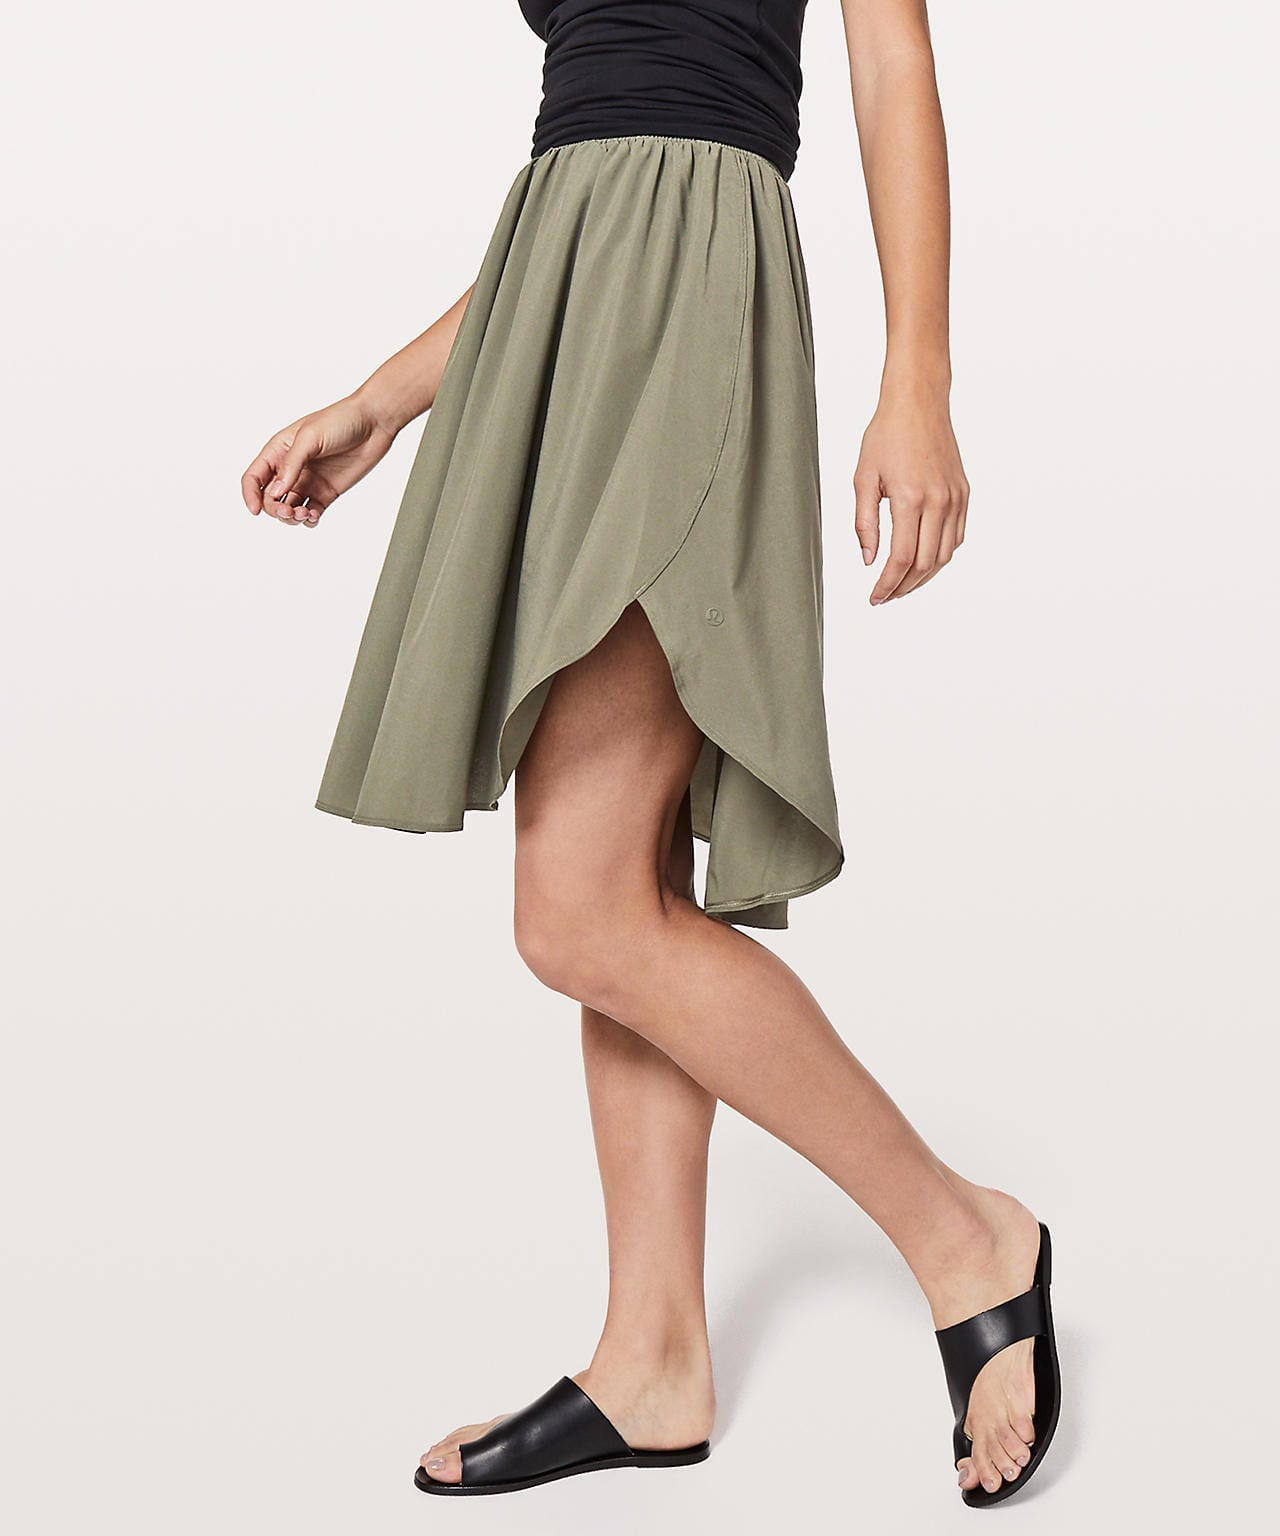 The Everyday Skirt